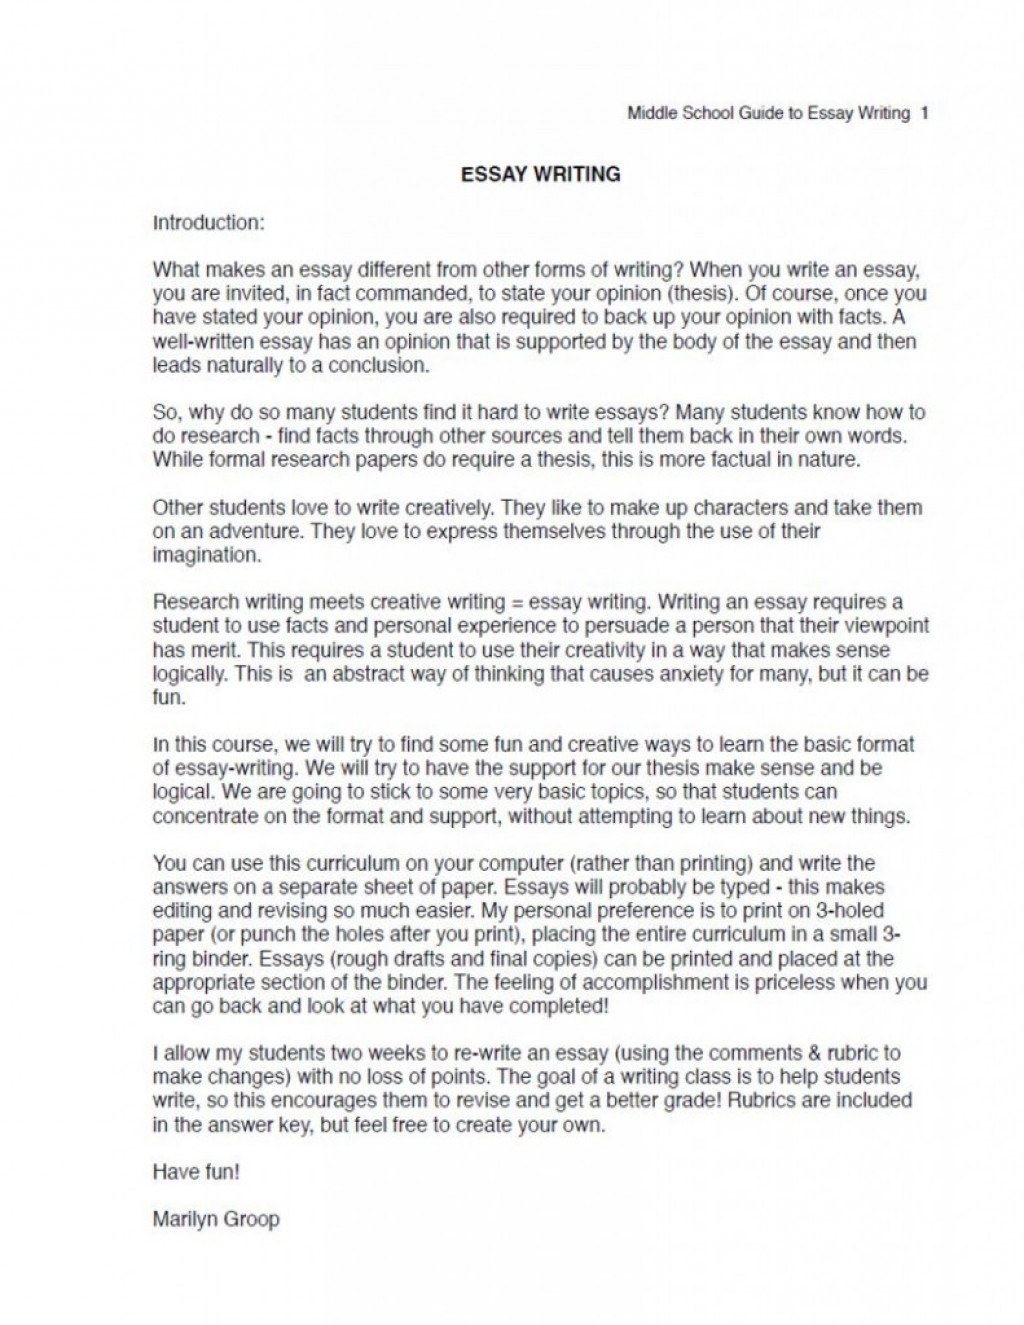 007 Essay Example Ms Excerpt 791x1024cb Free Awesome Persuasive Outline Template On Texting While Driving Examples Large